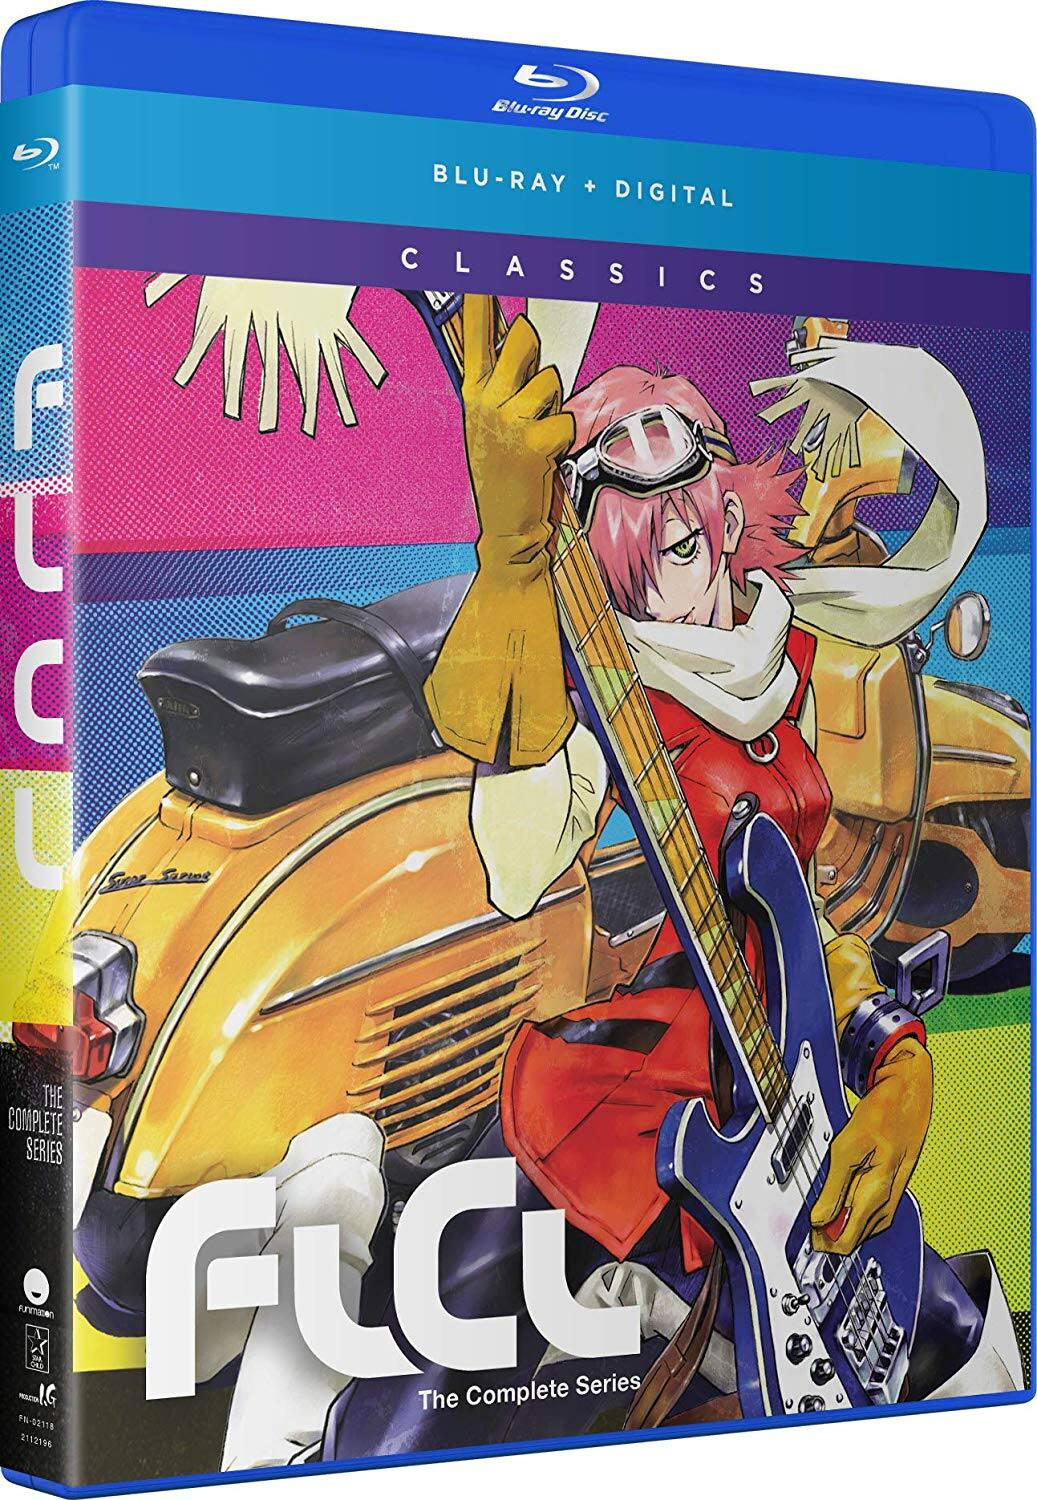 FLCL: The Complete Series (Blu-Ray + Digital HD) $25.99 + Free Shipping via Amazon